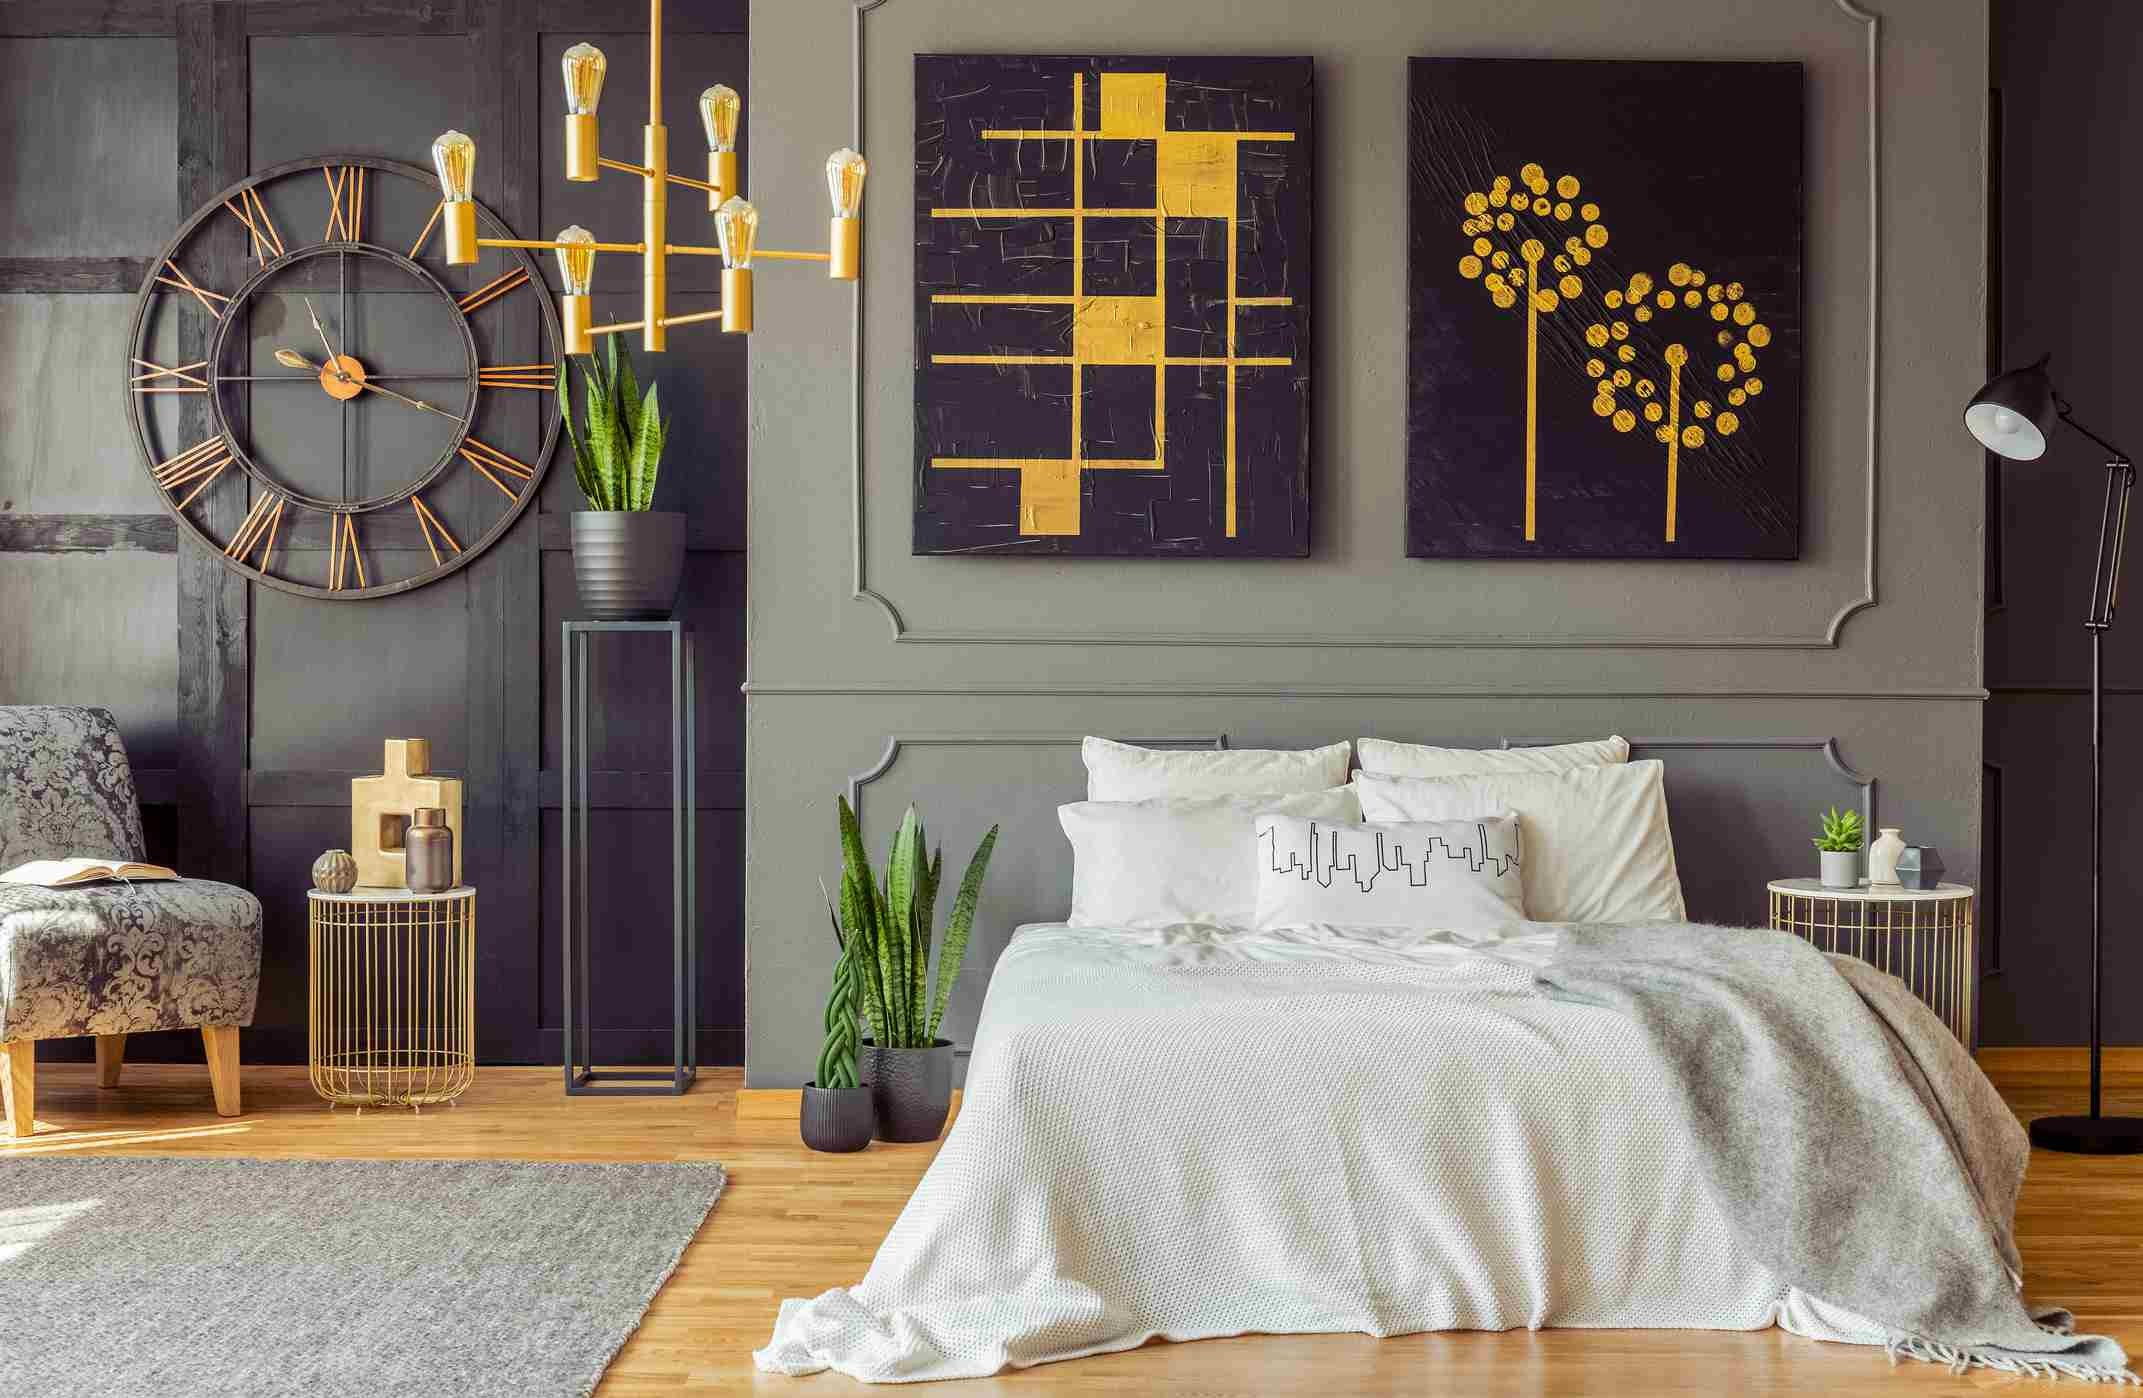 Grey blanket on bed against the wall with black posters in bedroom interior with clock.